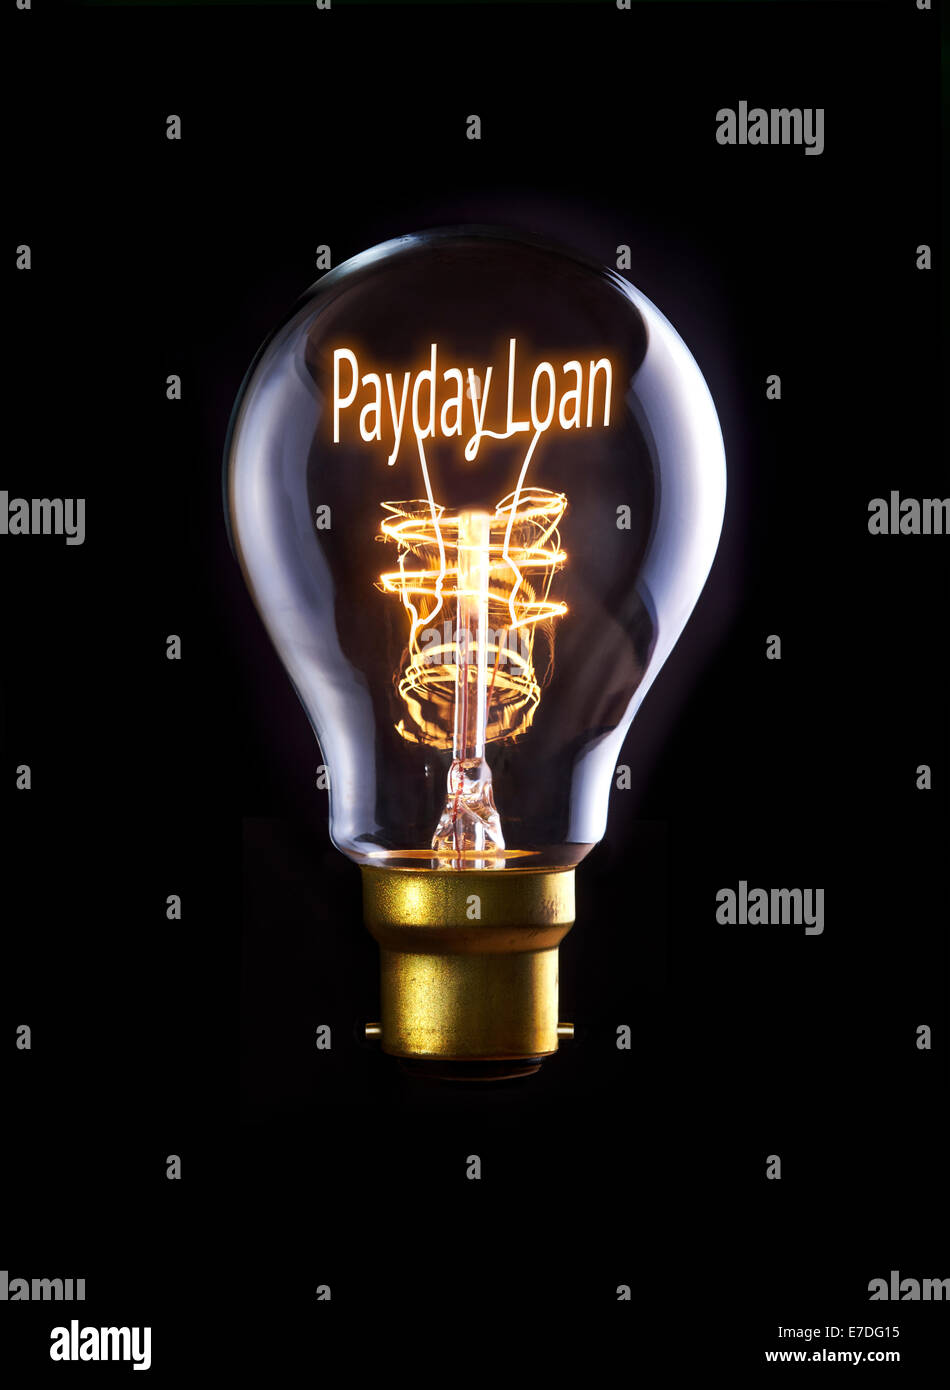 Payday Loan concept in a filament lightbulb. - Stock Image